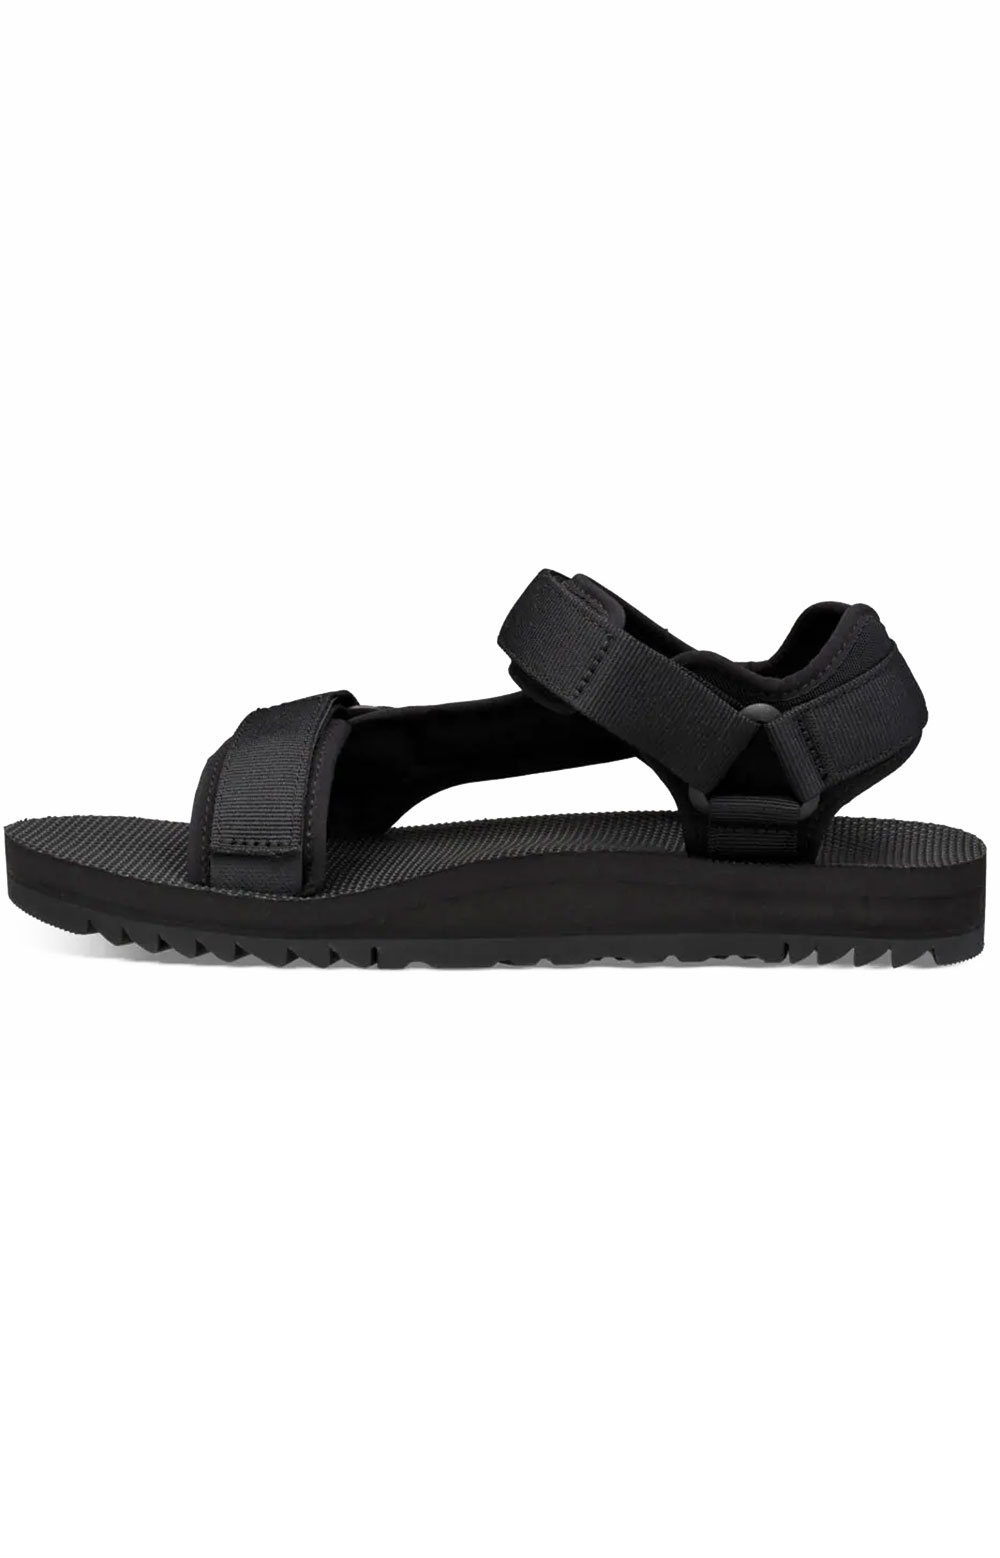 (1106786) Universal Trail Sandals - Pottery Black/Taupe  3